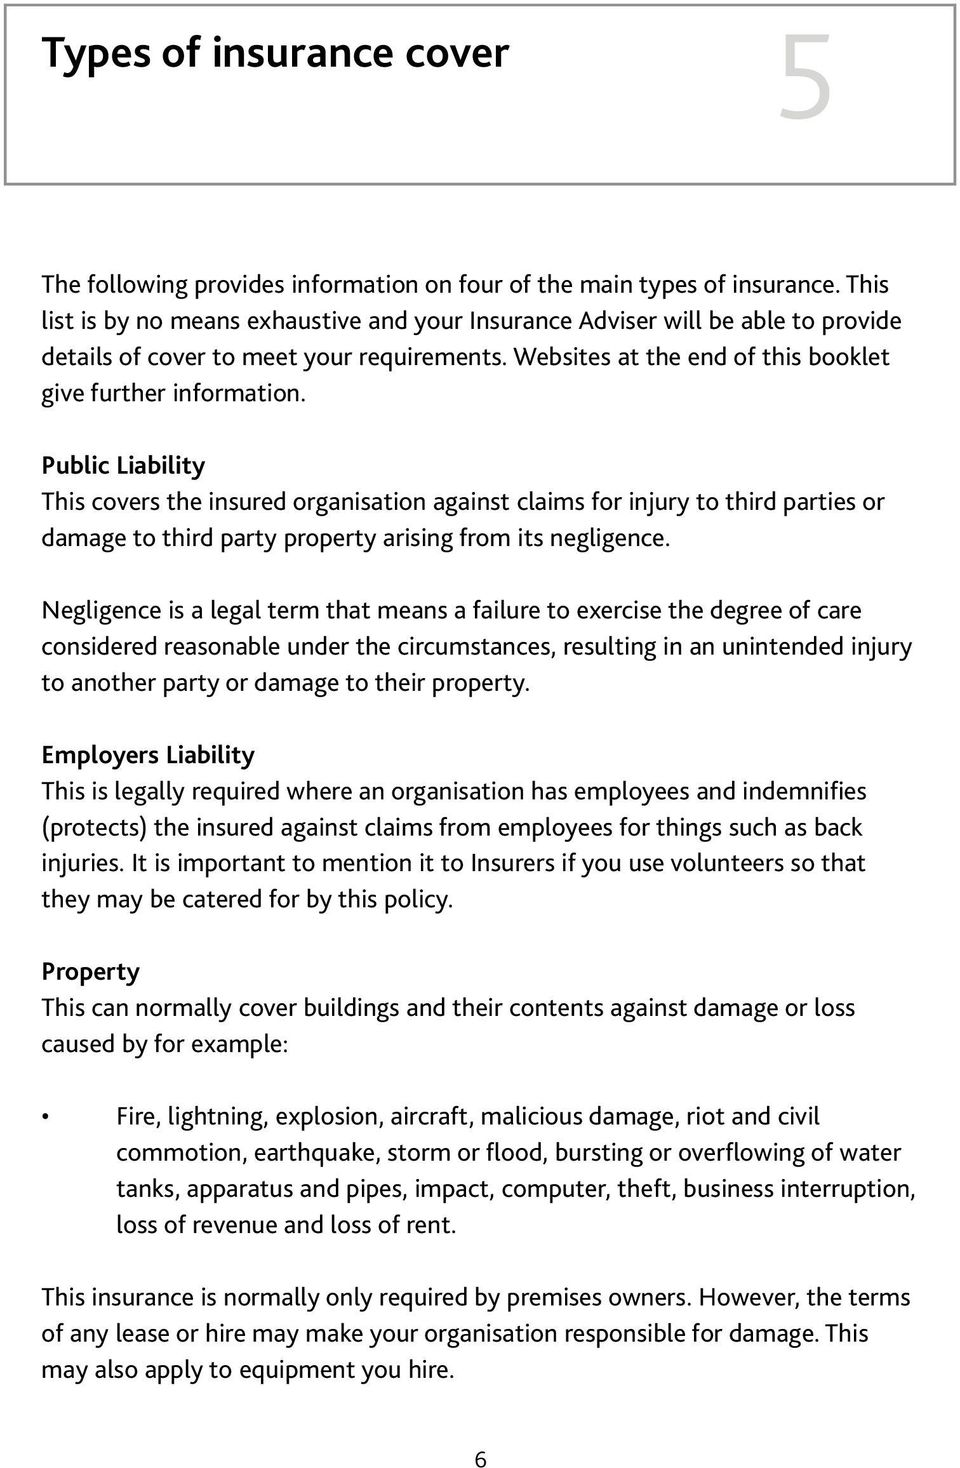 Public Liability This covers the insured organisation against claims for injury to third parties or damage to third party property arising from its negligence.